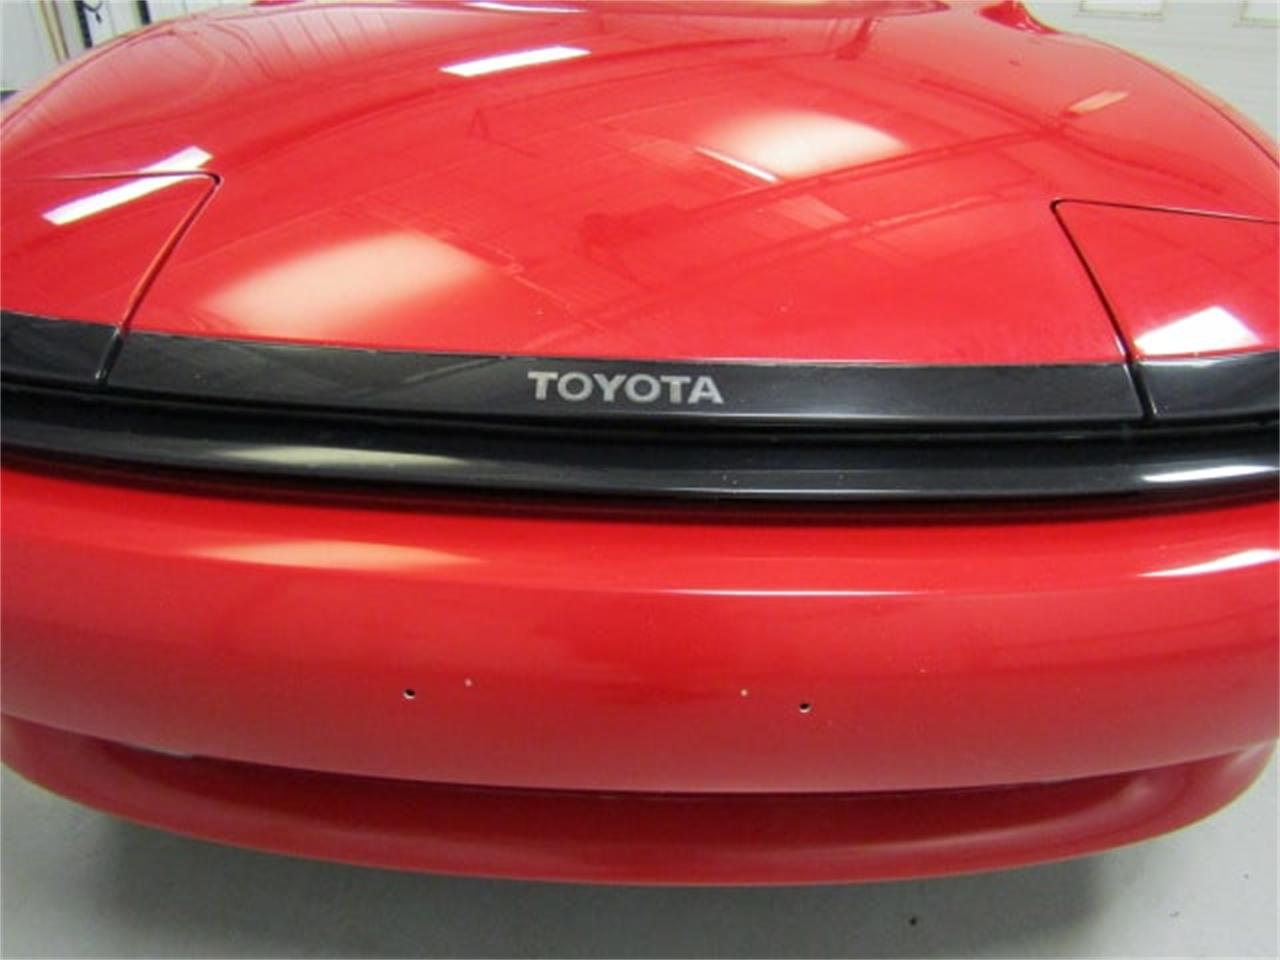 Large Picture of '90 Toyota Celica located in Virginia Offered by Duncan Imports & Classic Cars - LI31